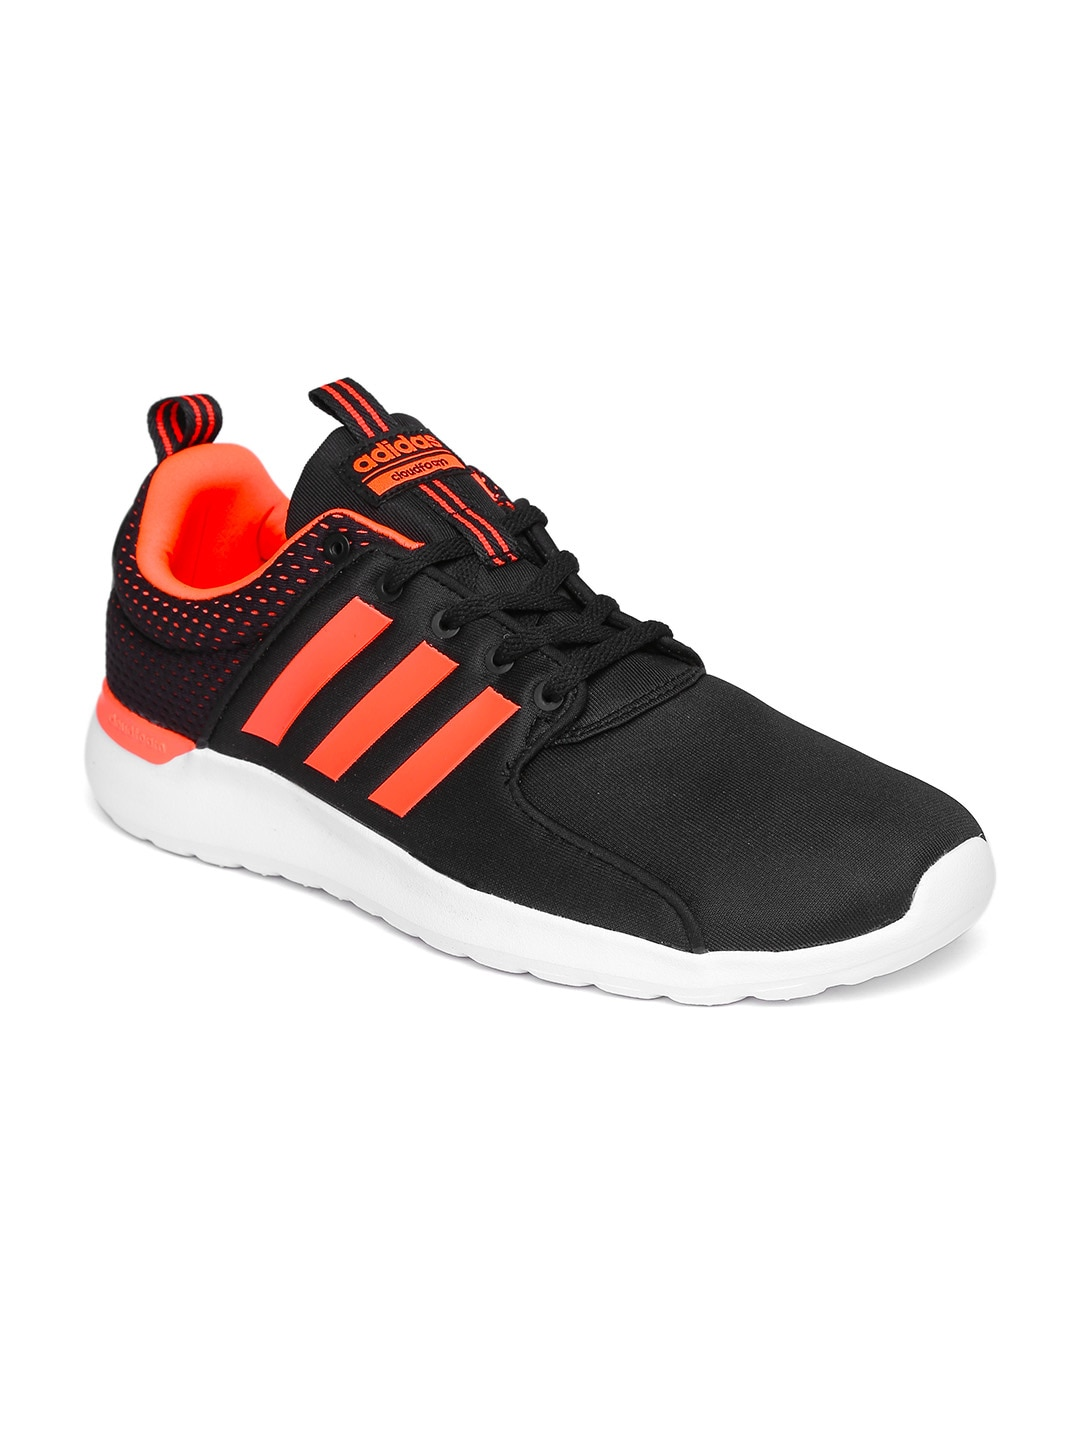 big sale ff52a e2a12 Adidas Neo Shoes - Buy Adidas Neo Shoes online in India